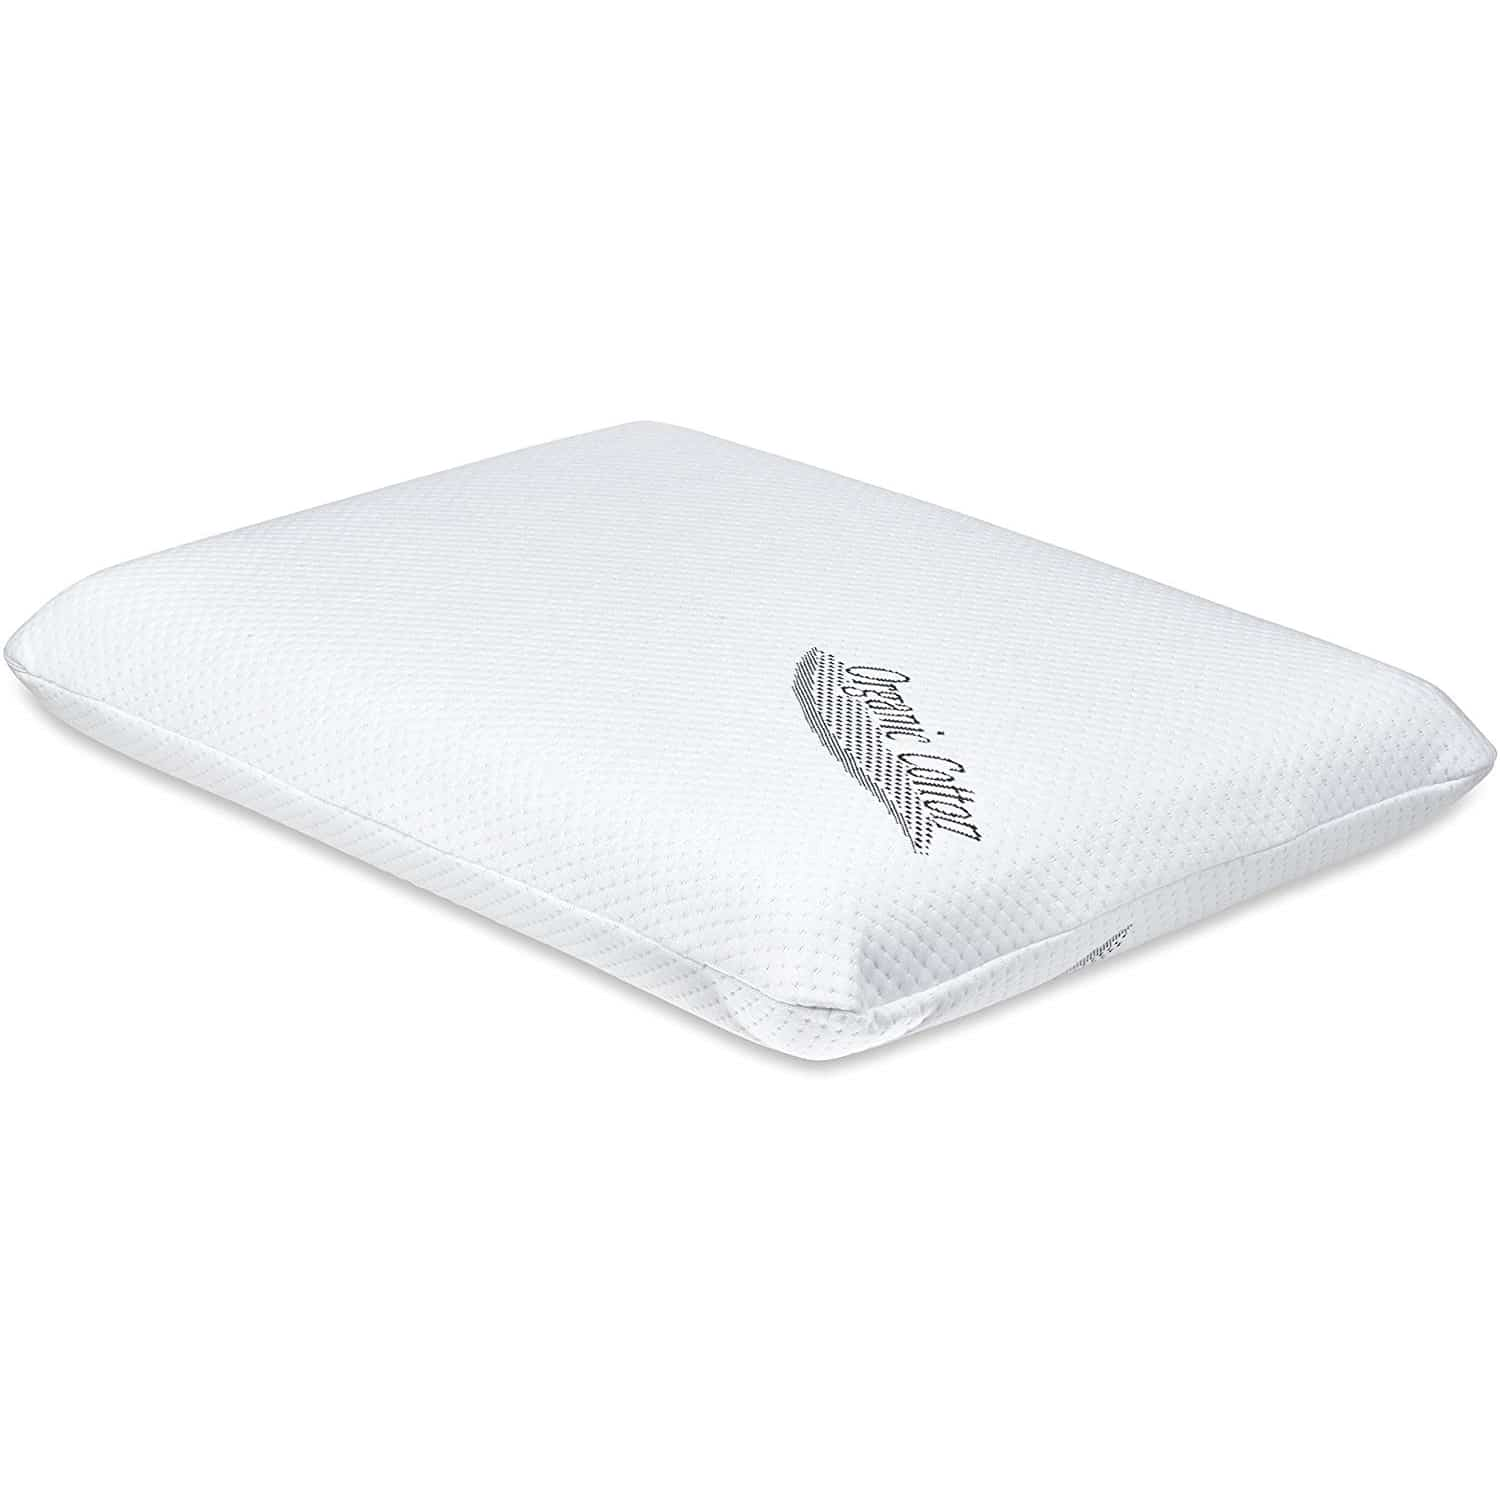 6 Best Pillow For Stomach Sleepers Dec 2019 Reviews